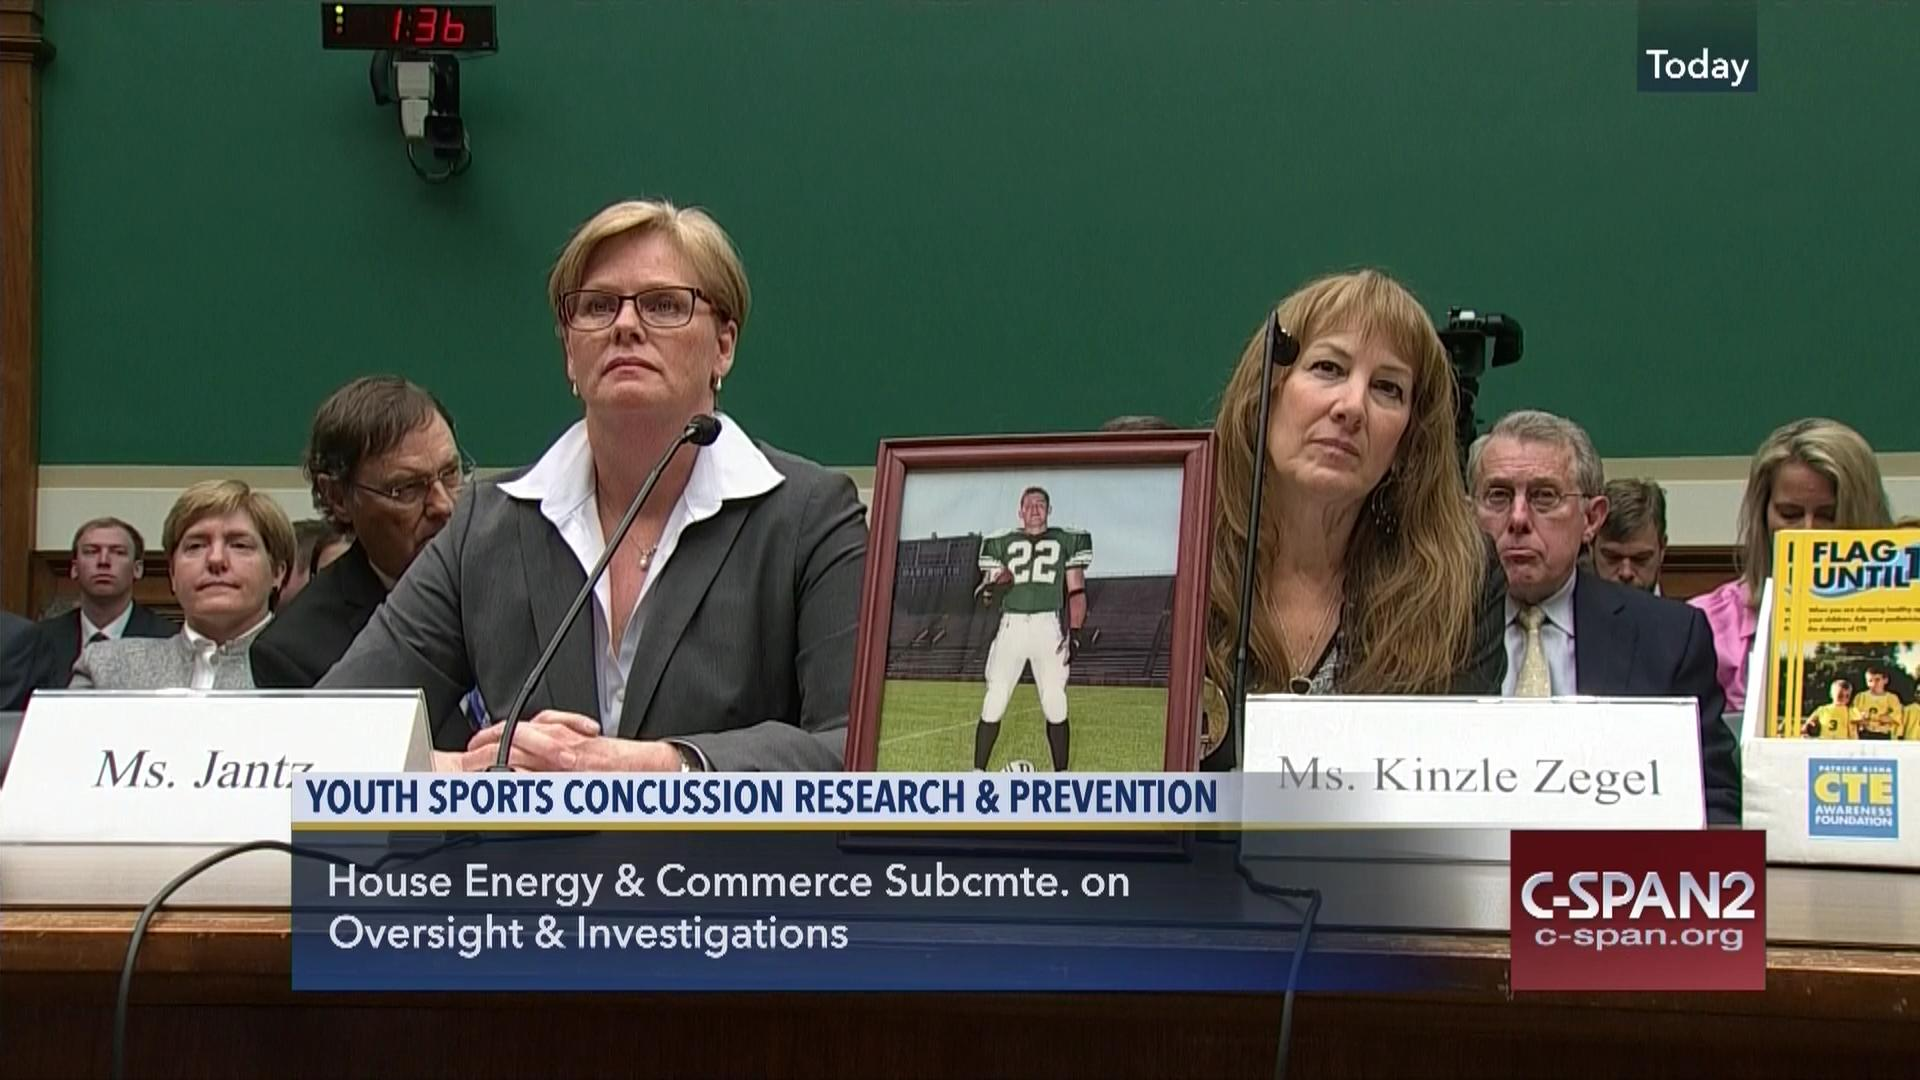 House Committee Examines Concussions Youth Sports, May 13 2016   C-SPAN.org